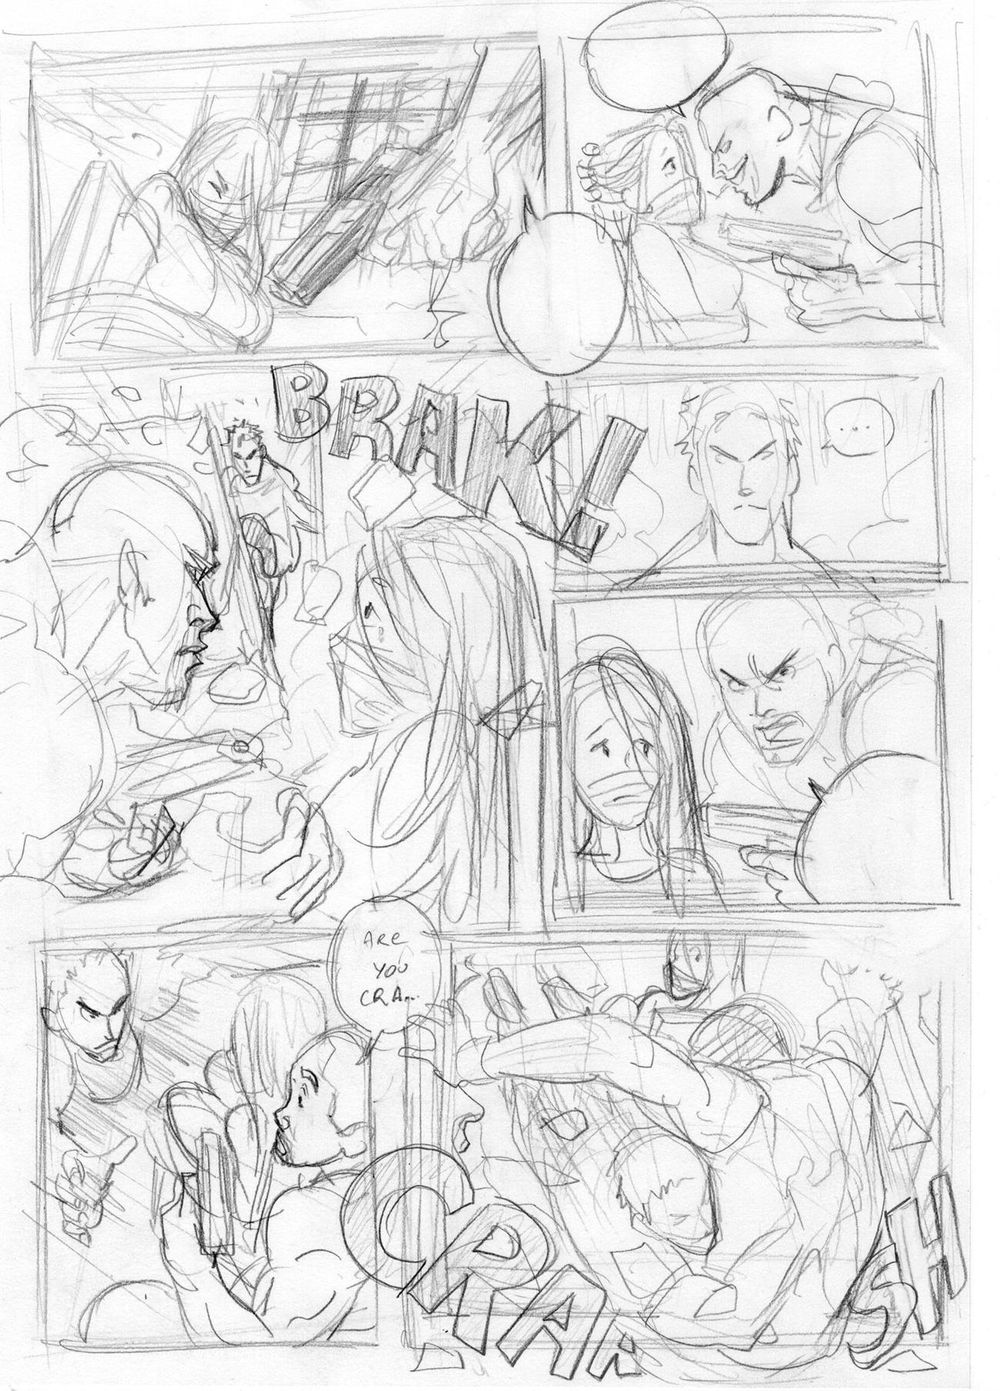 Comic page - image 5 - student project